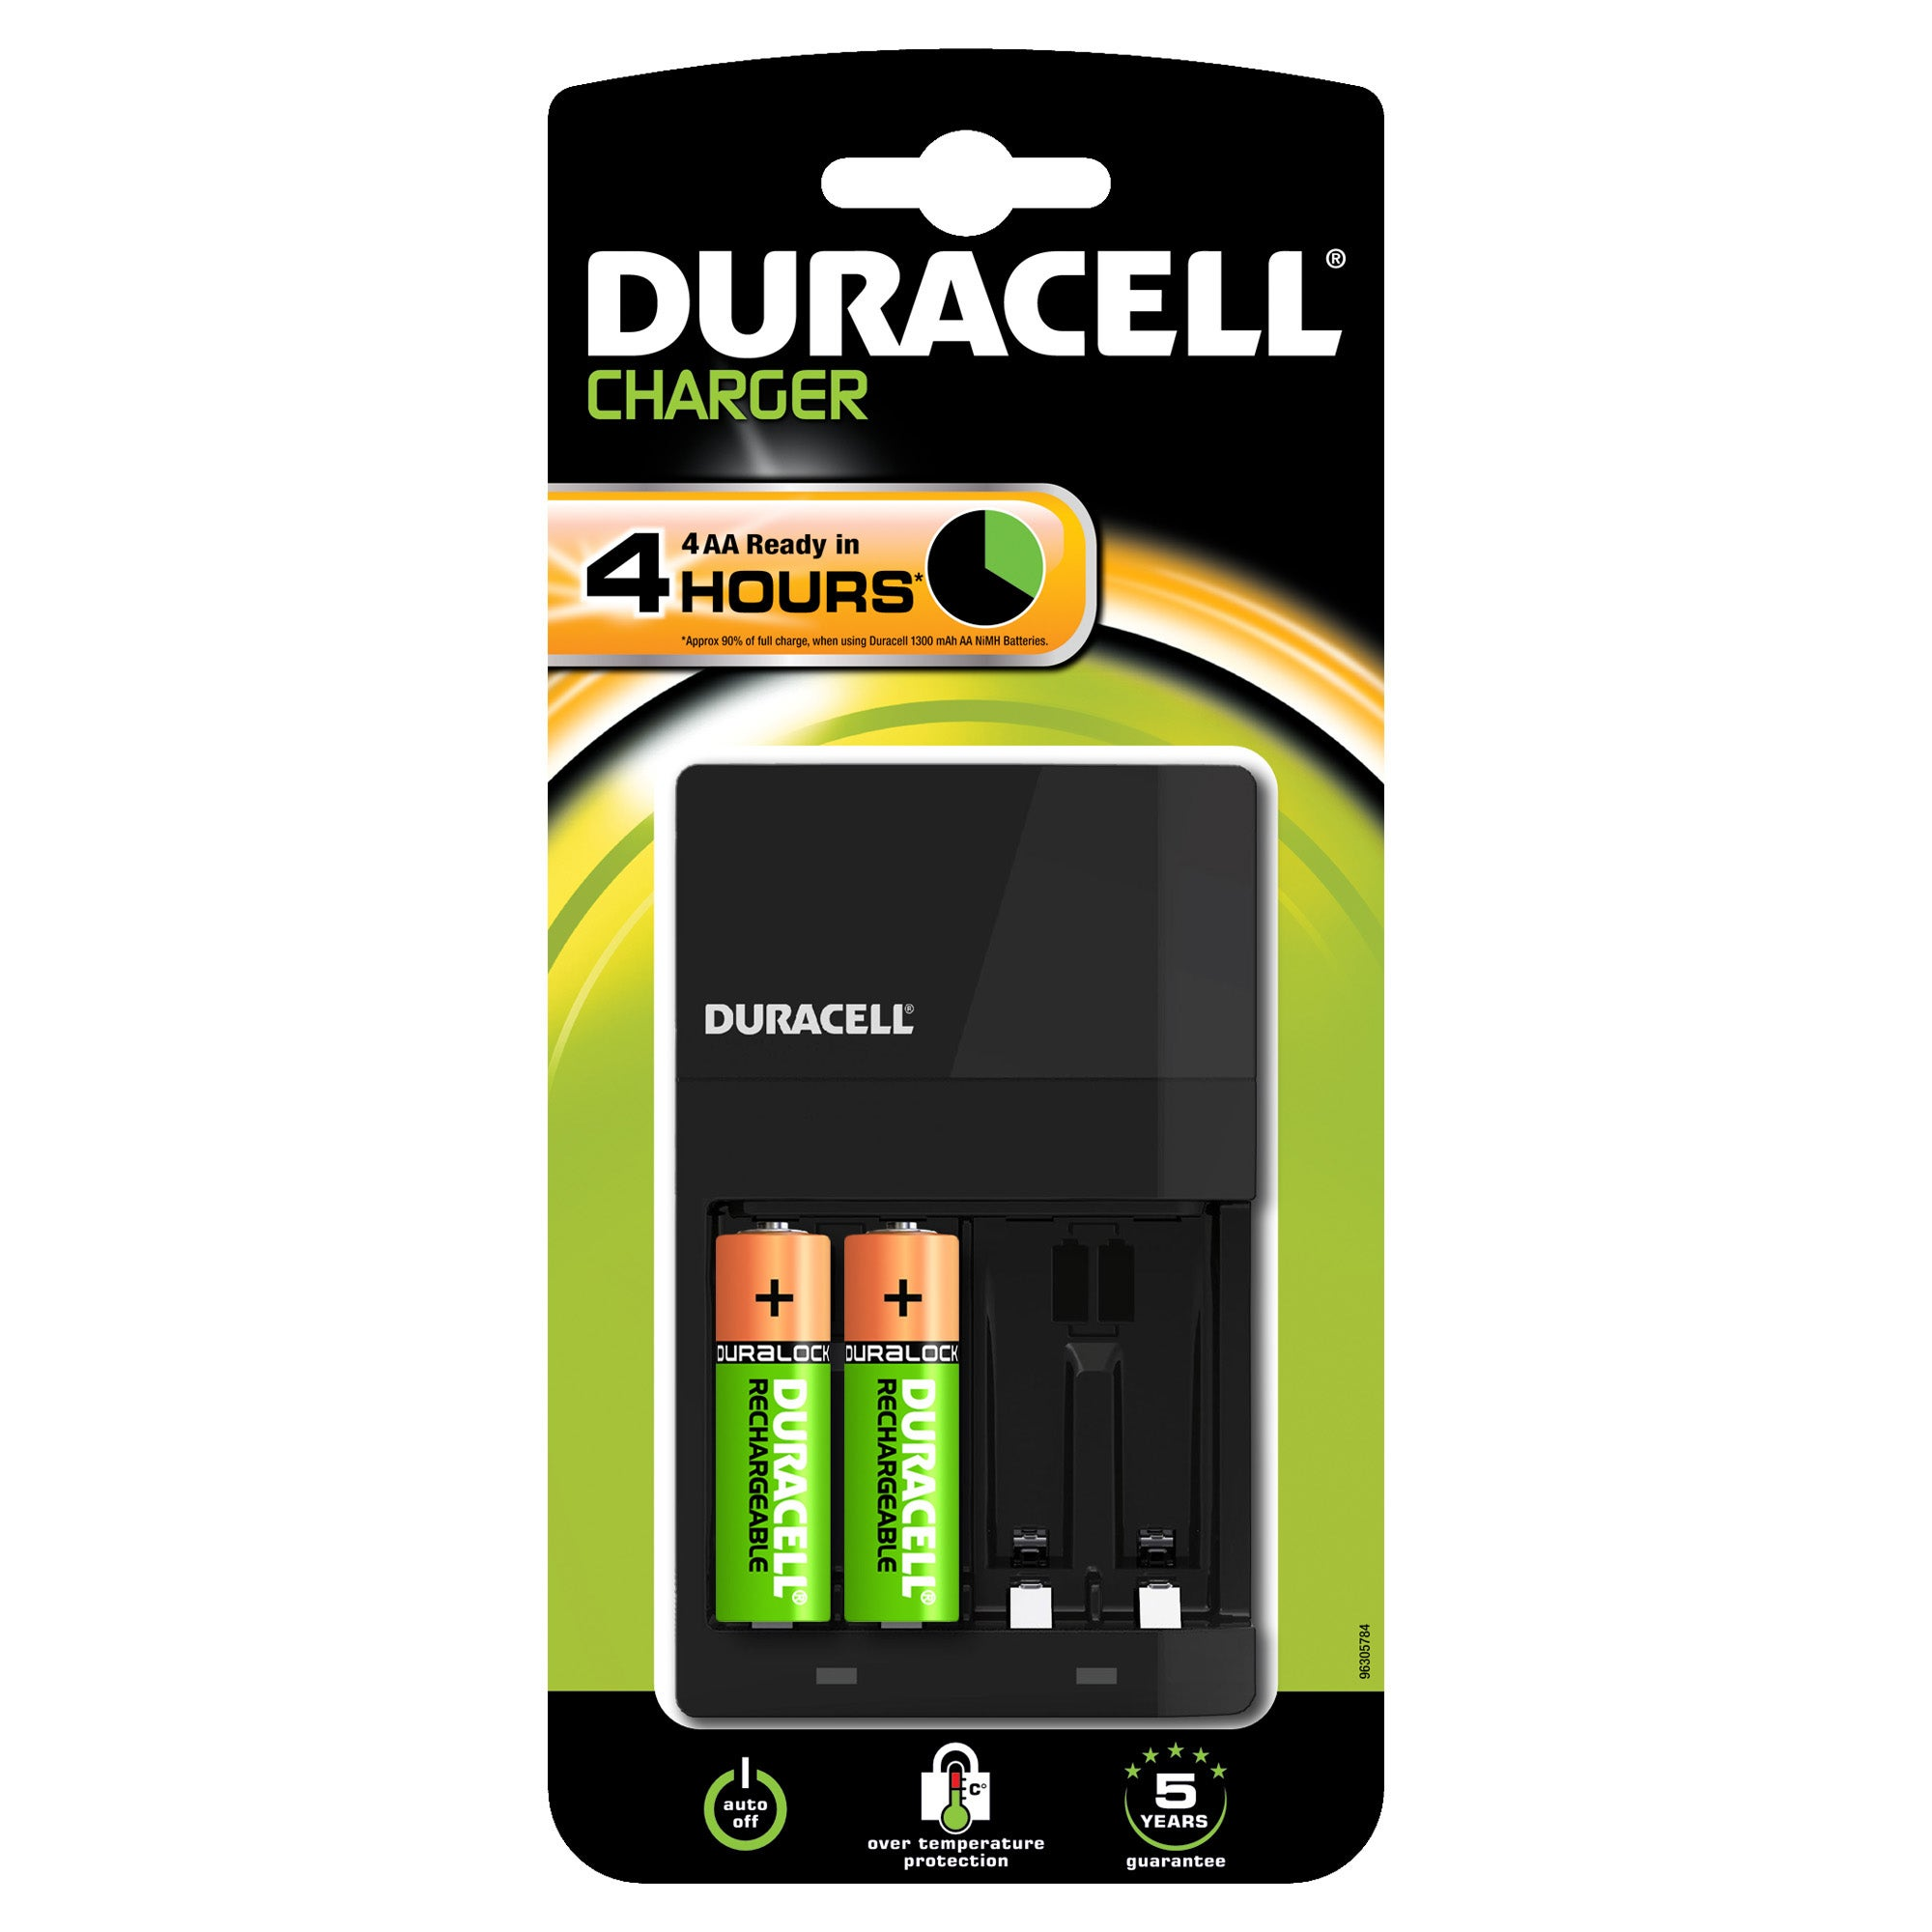 Duracell Charger & 2 AA Batteries